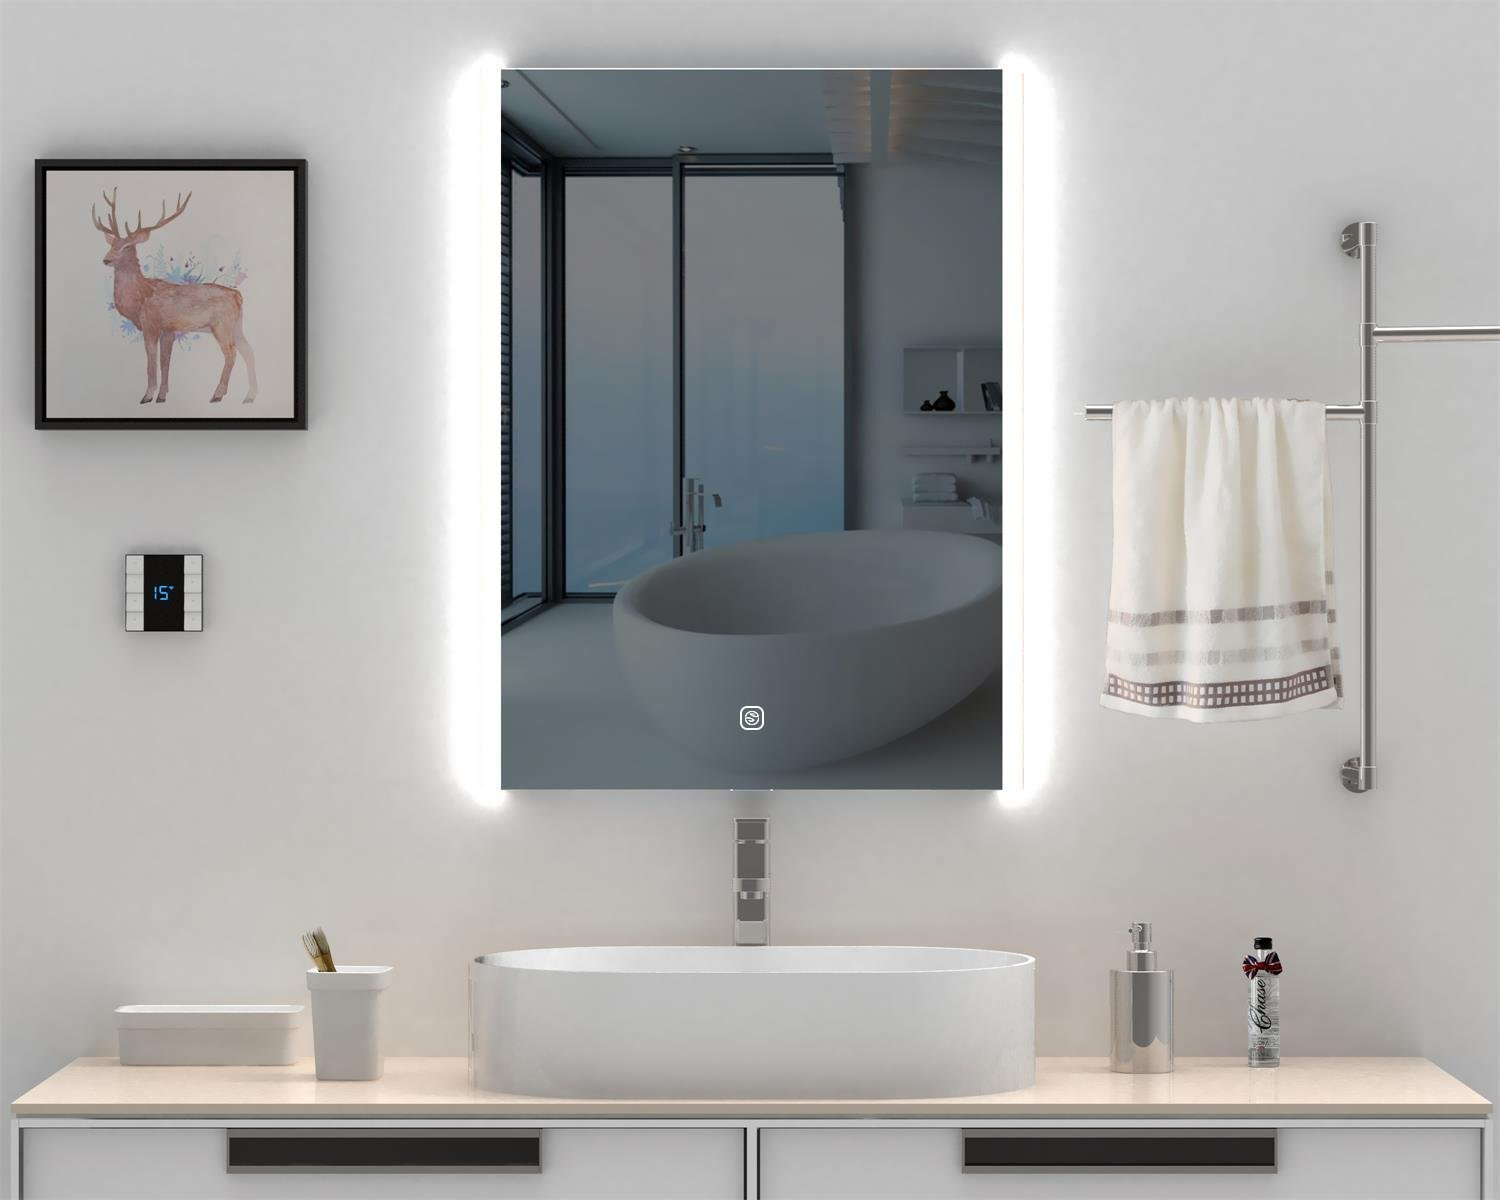 HEYNEMO 32''x24'' Bathroom LED Lighted Vanity Mirror Wall-Mounted Makeup Mirror, LED Lights Vanity Dimmer Touch Switch Waterproof Illuminated Mirror for Home Multipurpose, ONE-Year Warranty by HEYNEMO